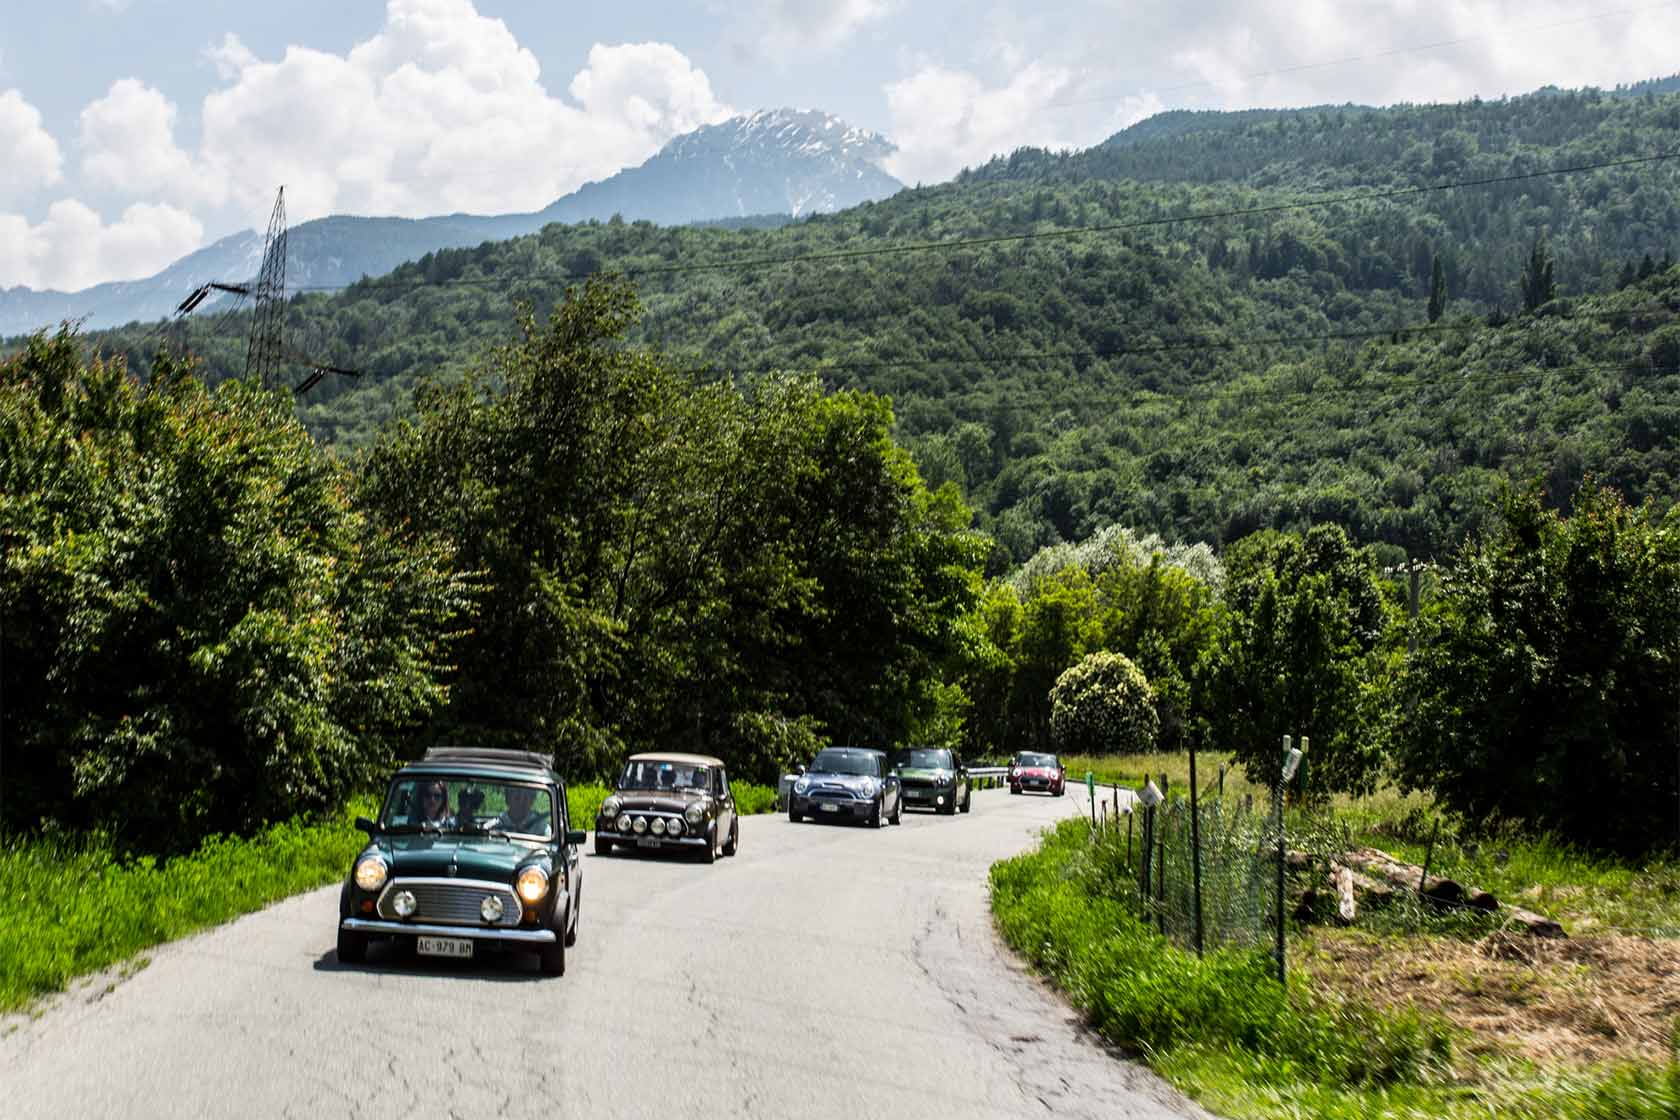 AOSTA VALLEY MINI MEETING 2019: Vieni a scoprire la Valle d'Aosta a bordo della tua MINI, classica o moderna.